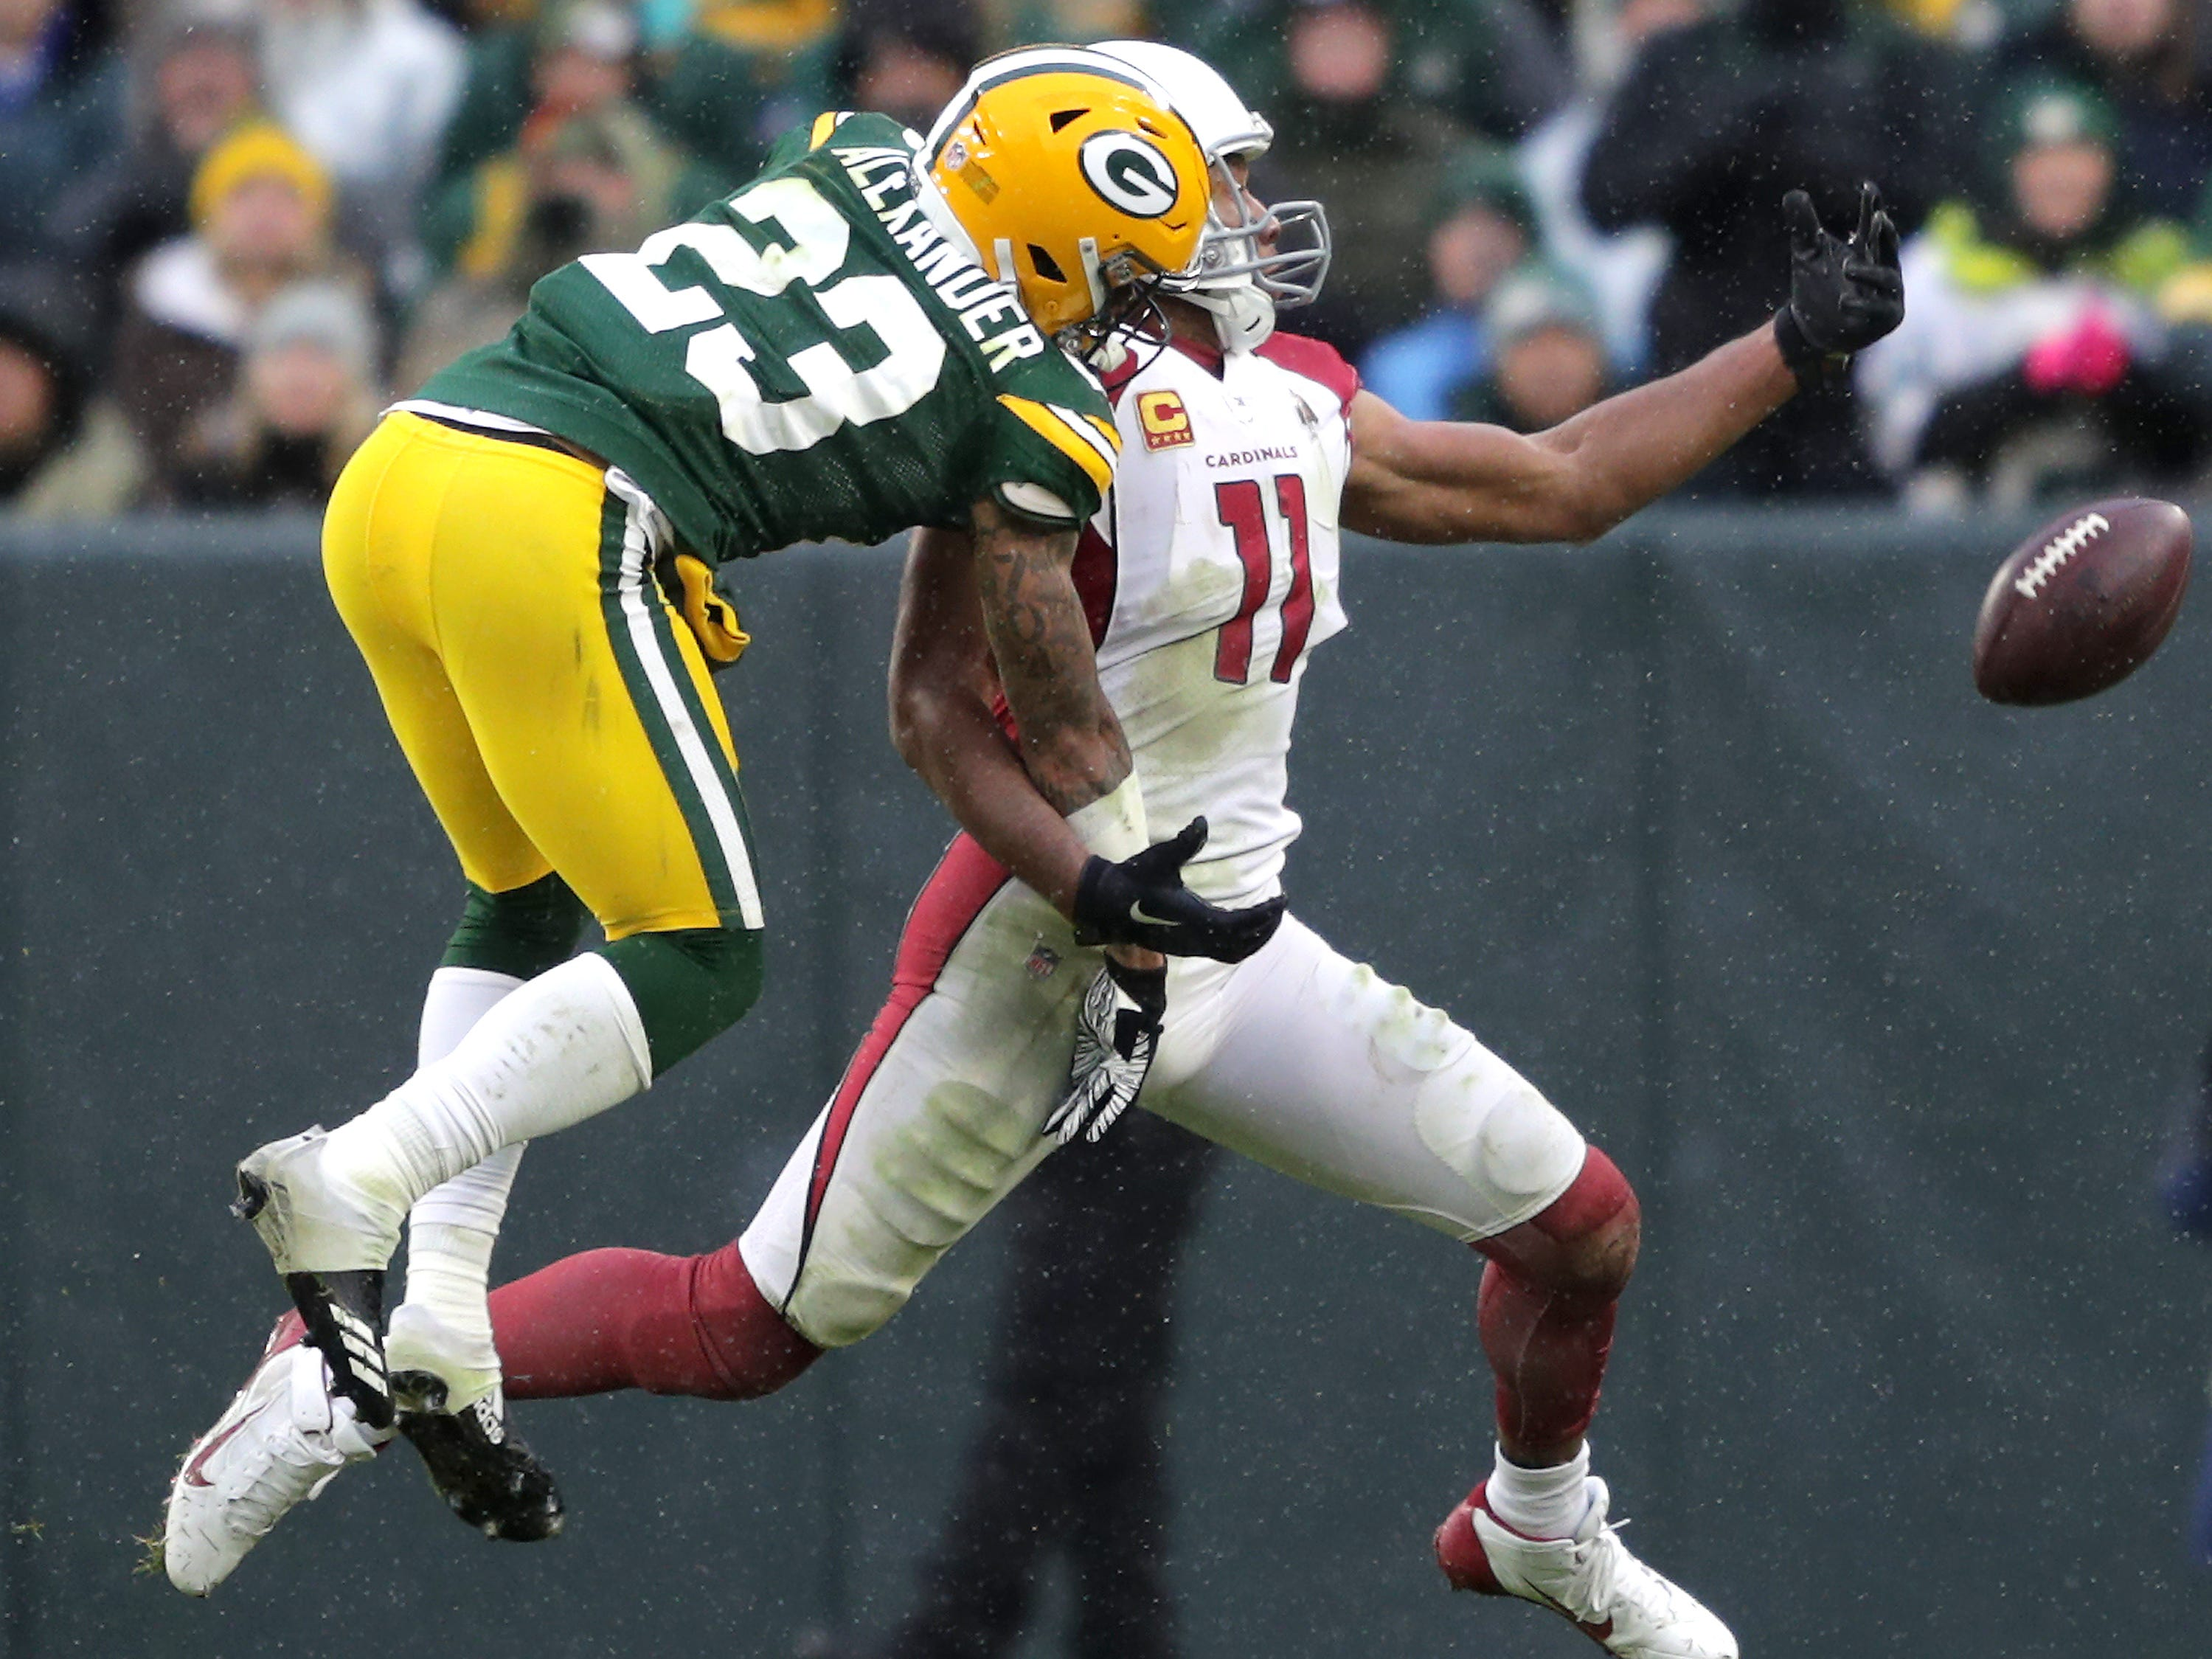 Green Bay Packers cornerback Jaire Alexander defends a third down pass to Arizona Cardinals wide receiver Larry Fitzgerald late in the fourth quarter during their football game on Sunday, December 2, 2018, at Lambeau Field in Green Bay, Wis. Arizona defeated Green Bay 20 to 17. Wm. Glasheen/USA TODAY NETWORK-Wisconsin.